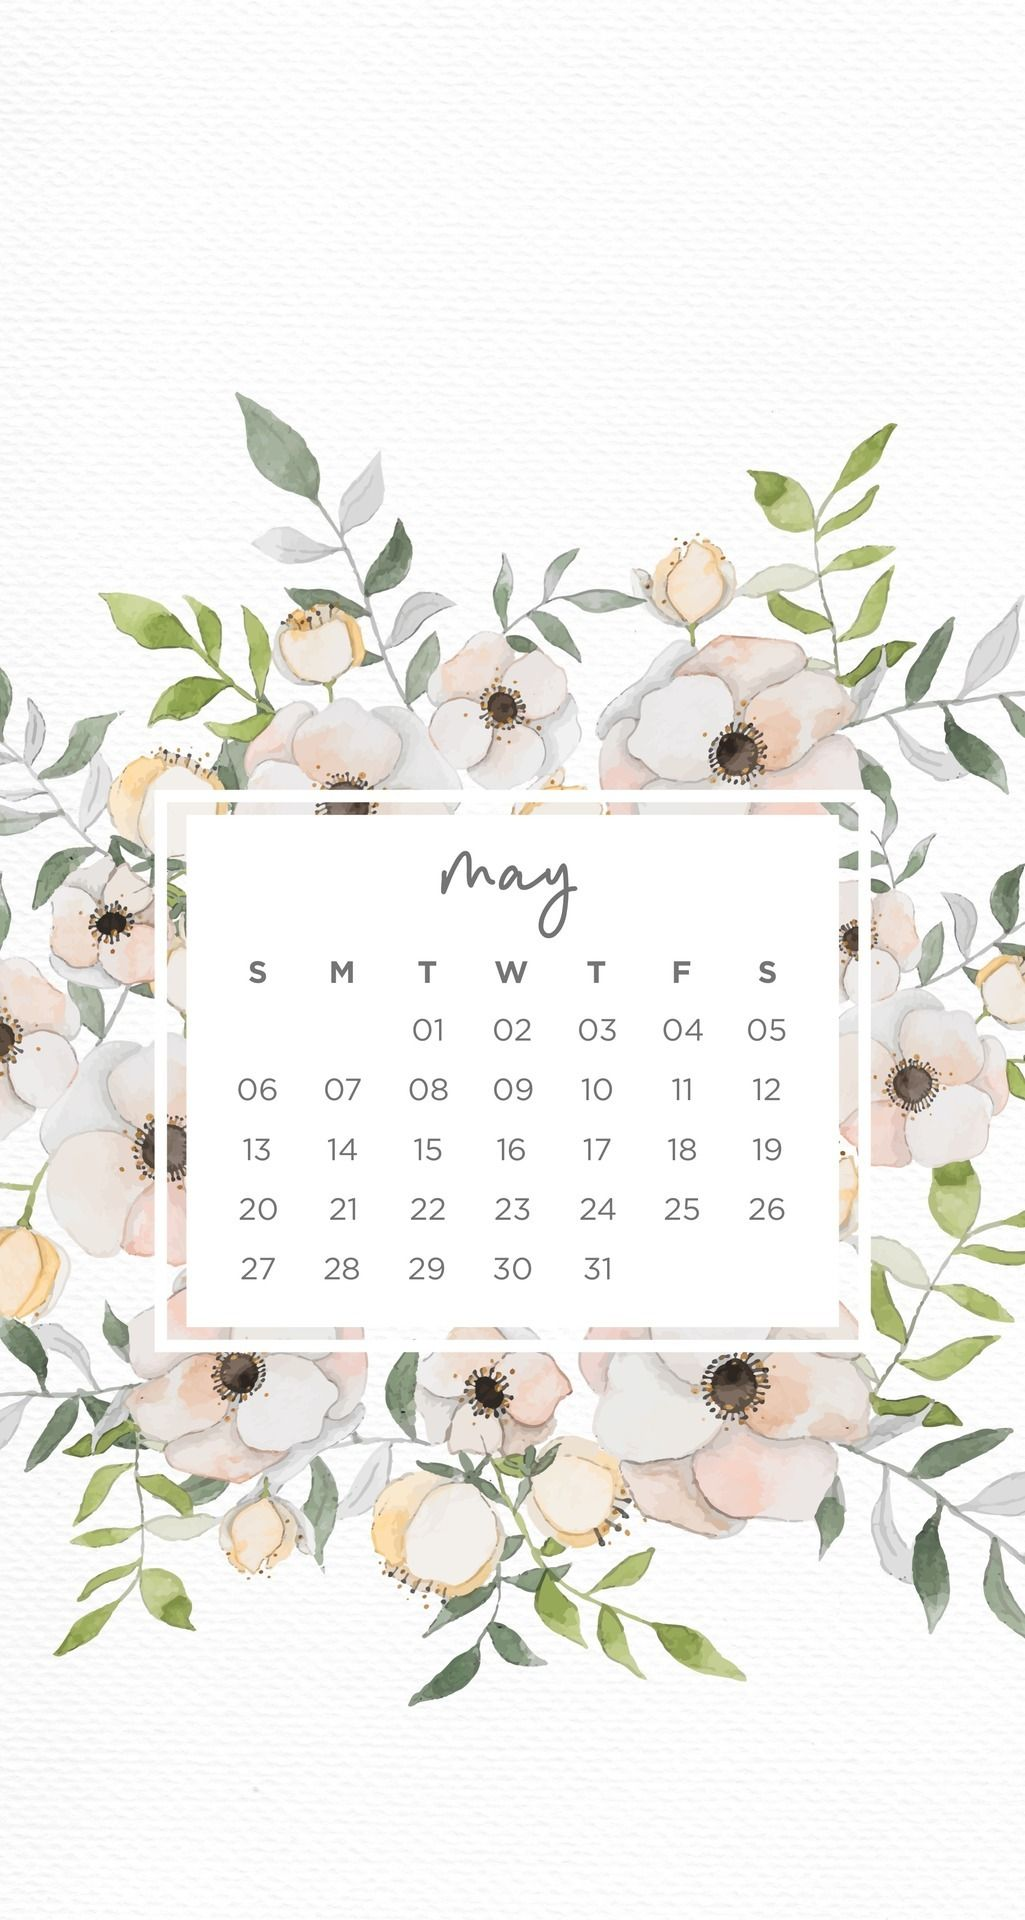 Pin by Mikayla Collins on Wallpapers Calendar wallpaper